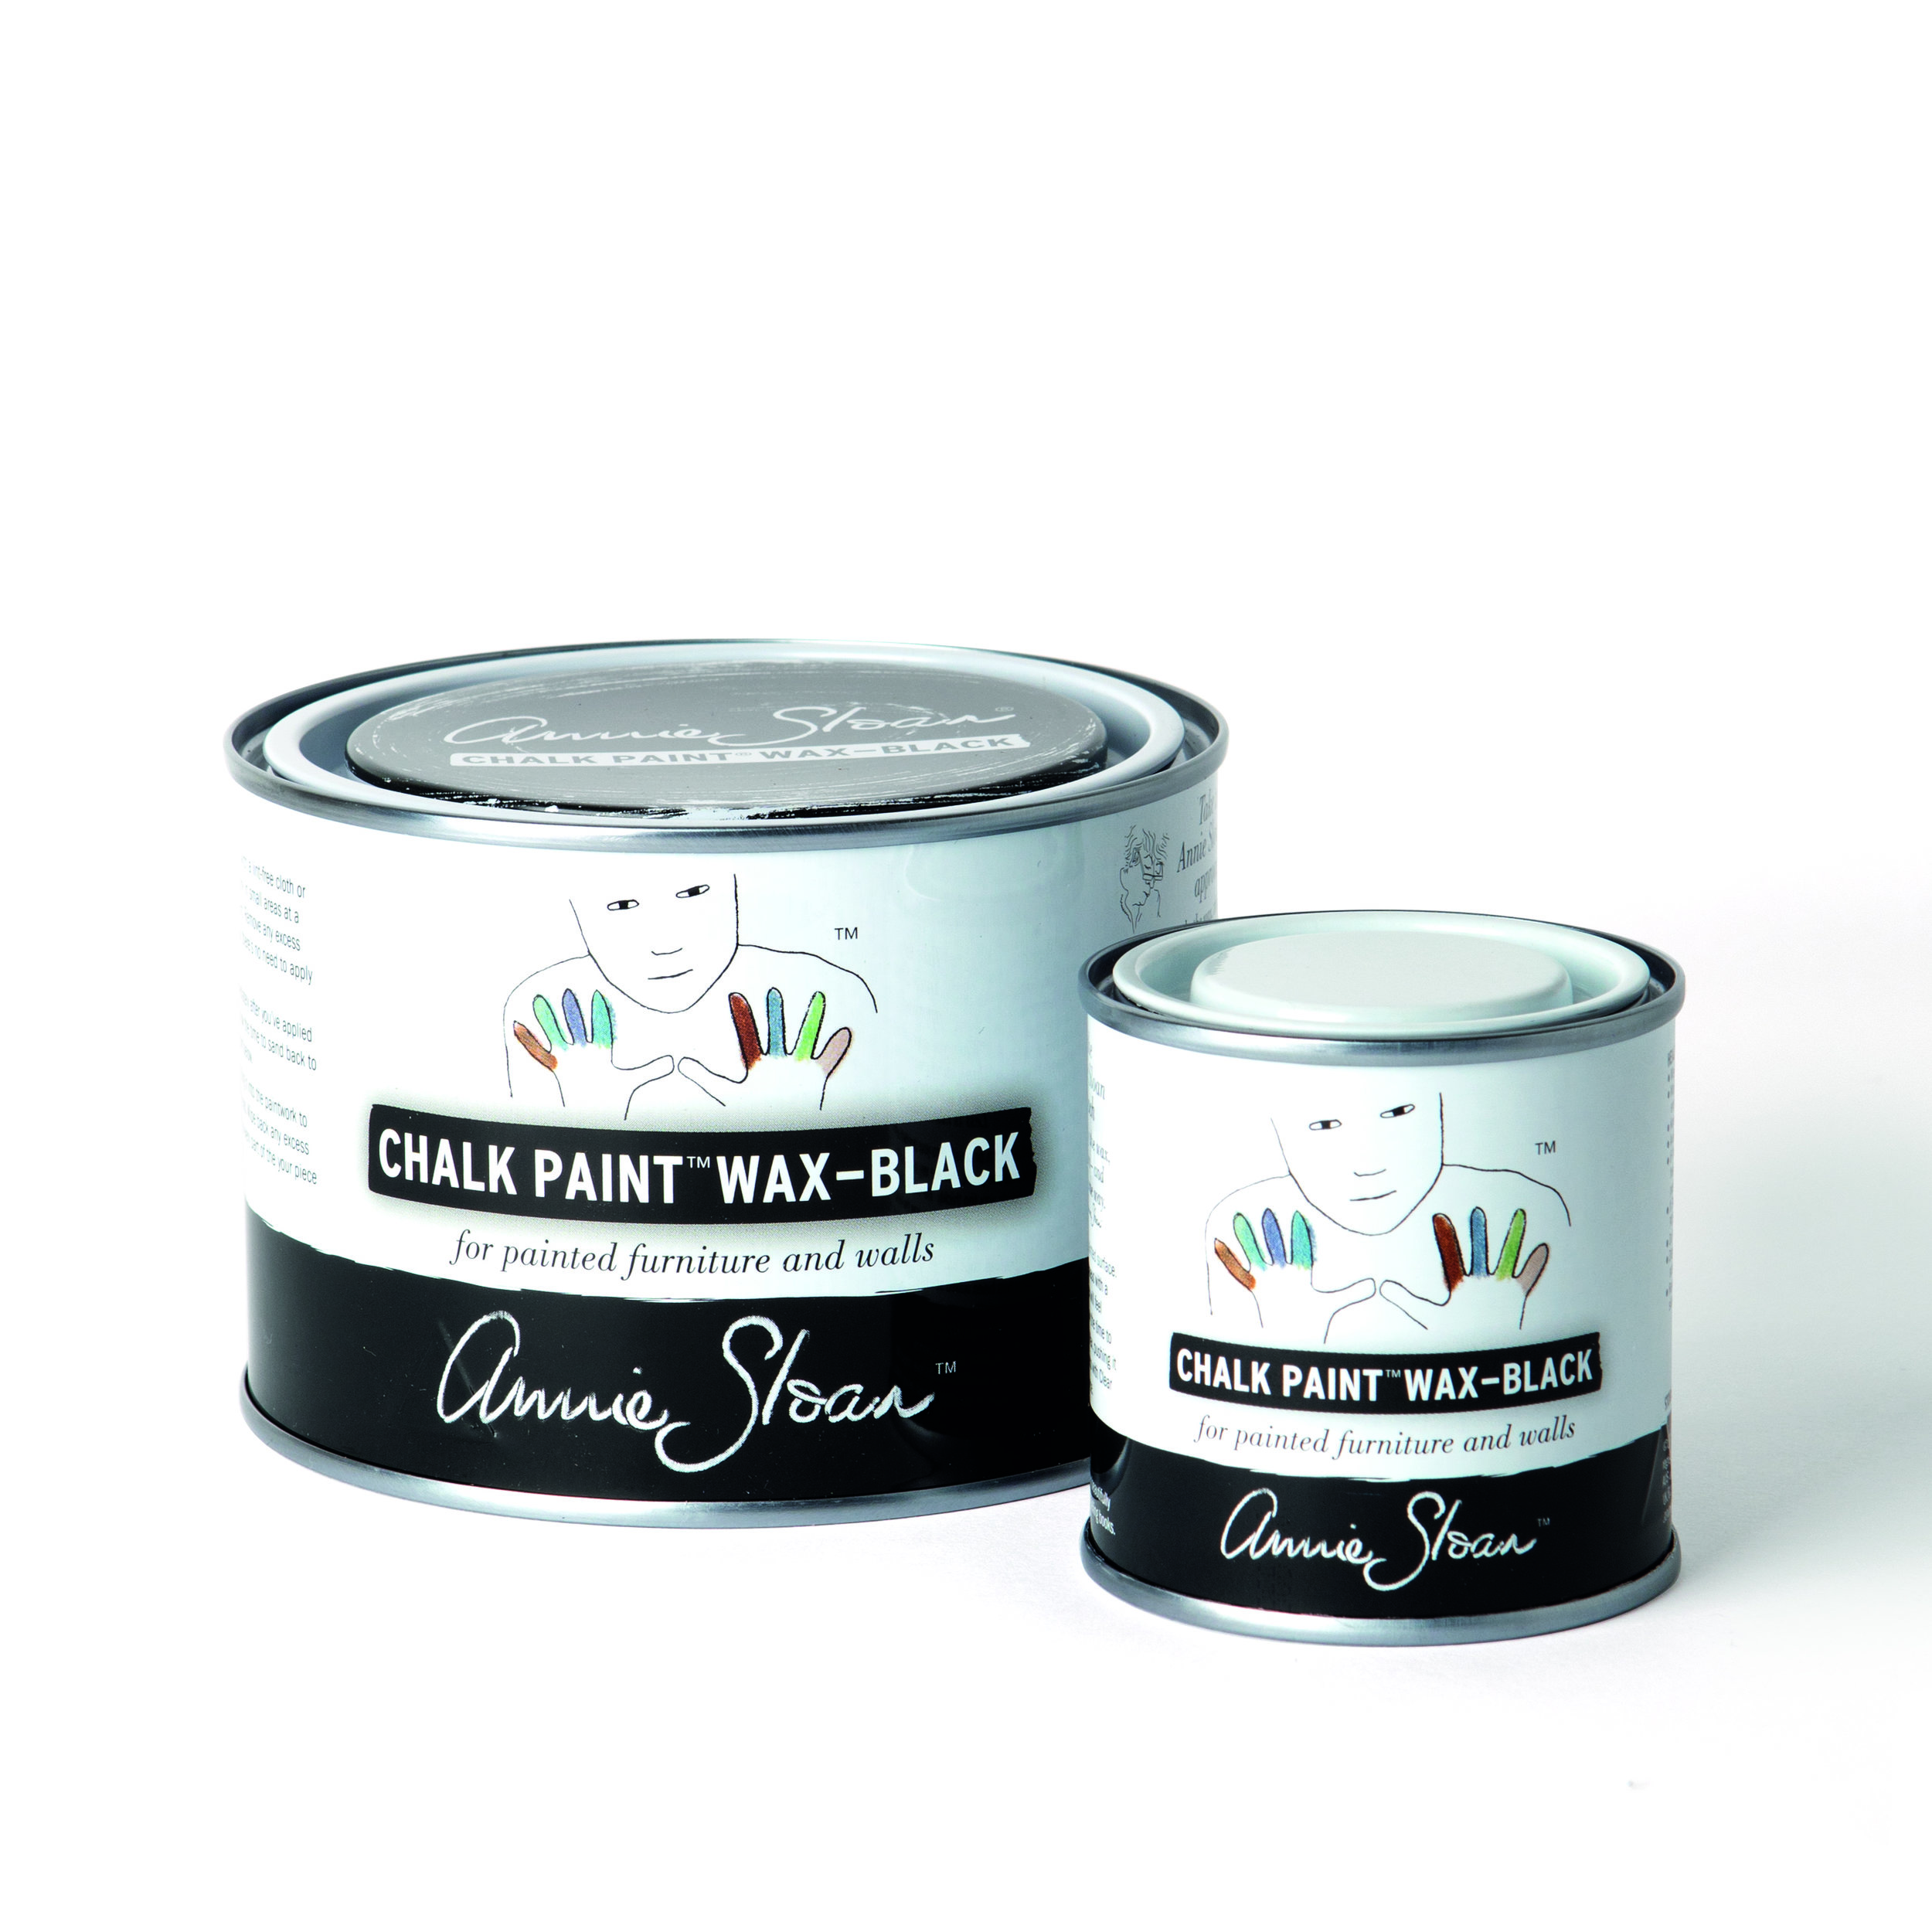 Black Chalk Paint Wax Nestings Home Decor Gifts Co